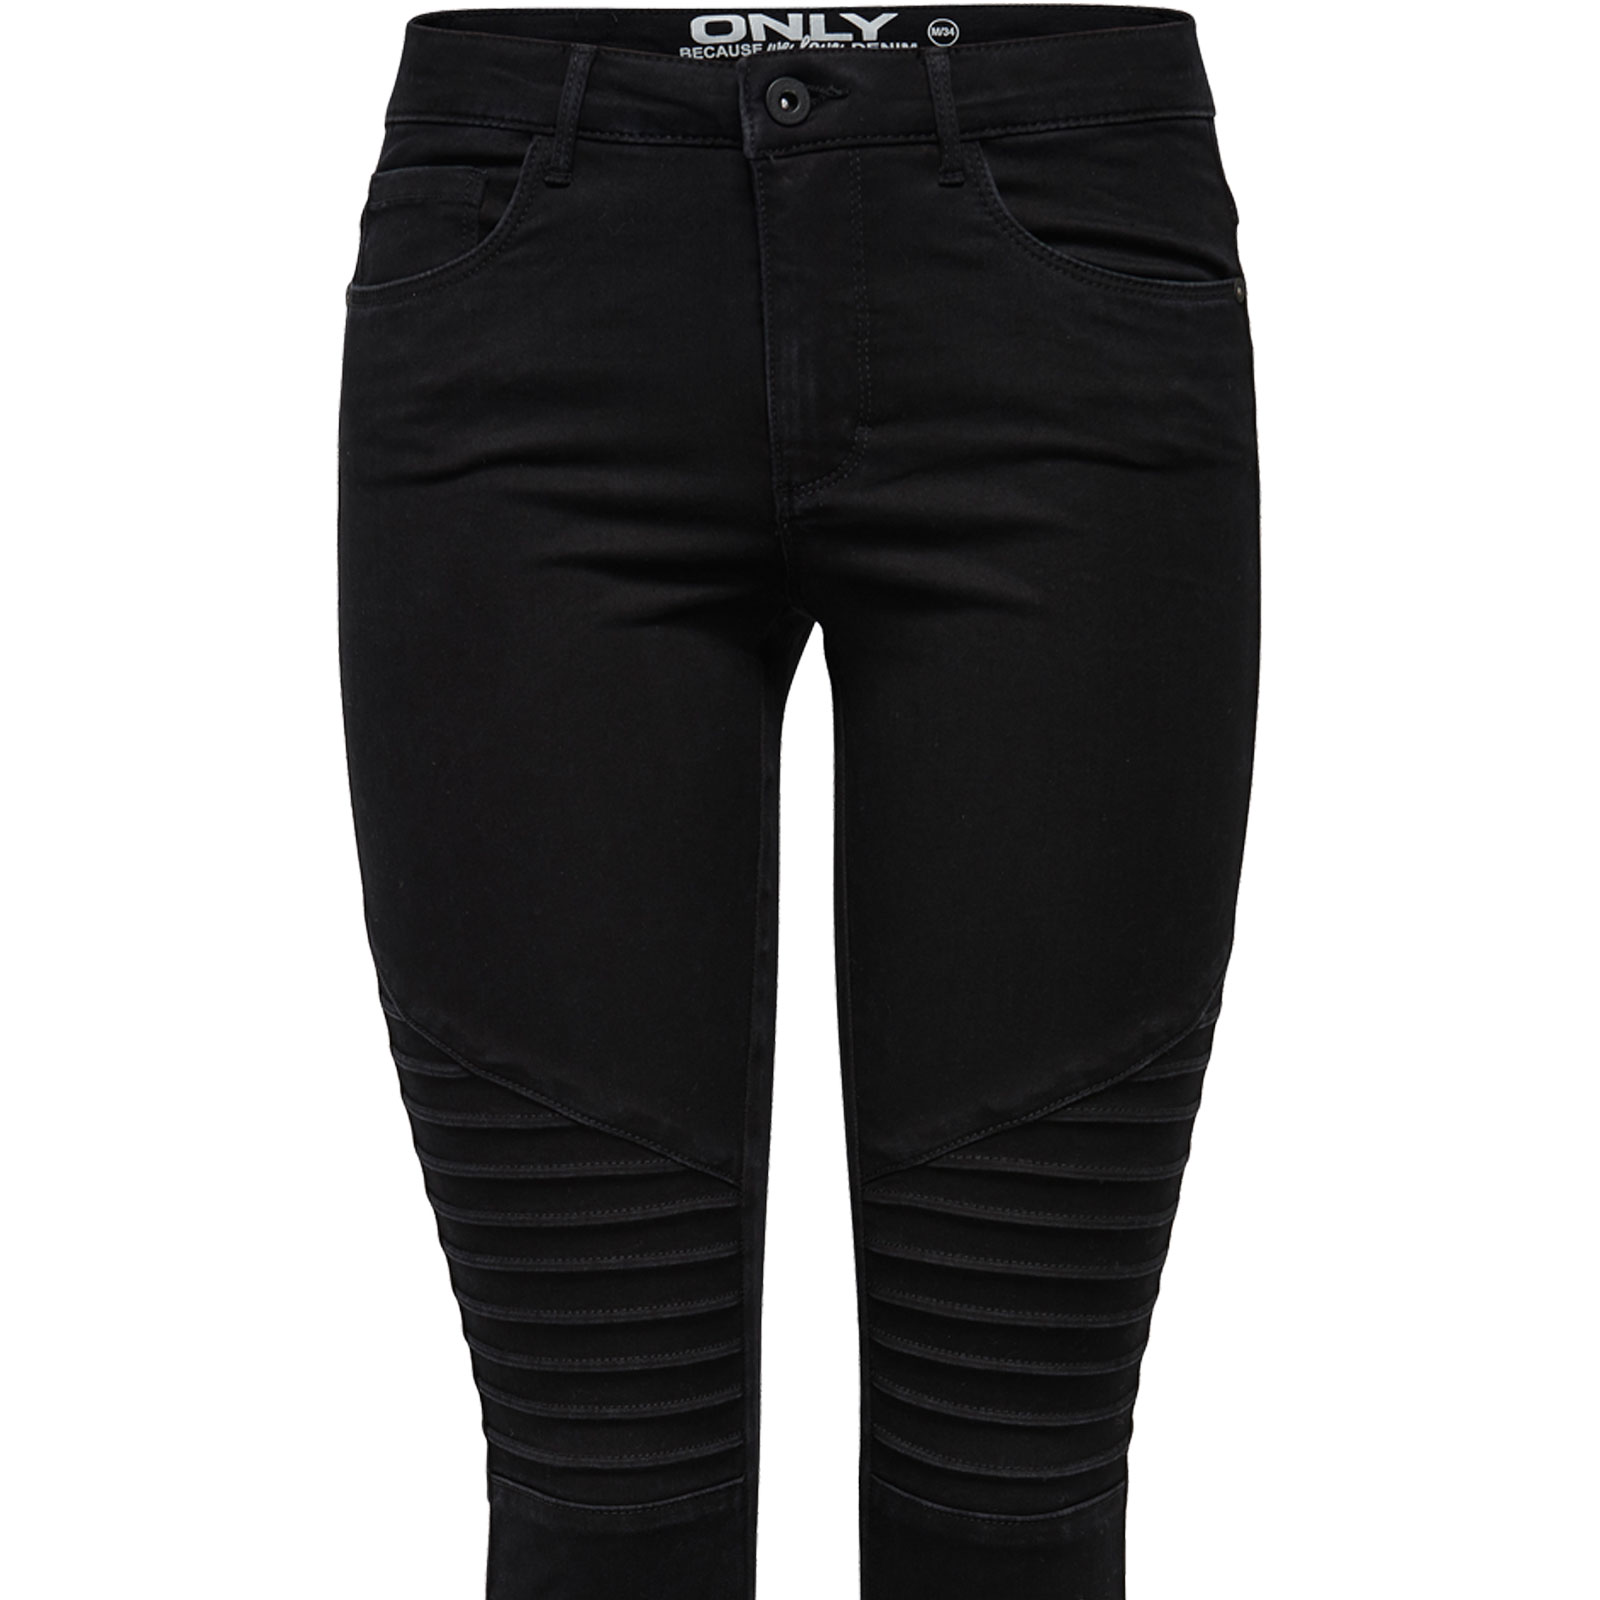 only damen leggings jeans royal reg skinny biker hose pim 600 schwarz black neu ebay. Black Bedroom Furniture Sets. Home Design Ideas